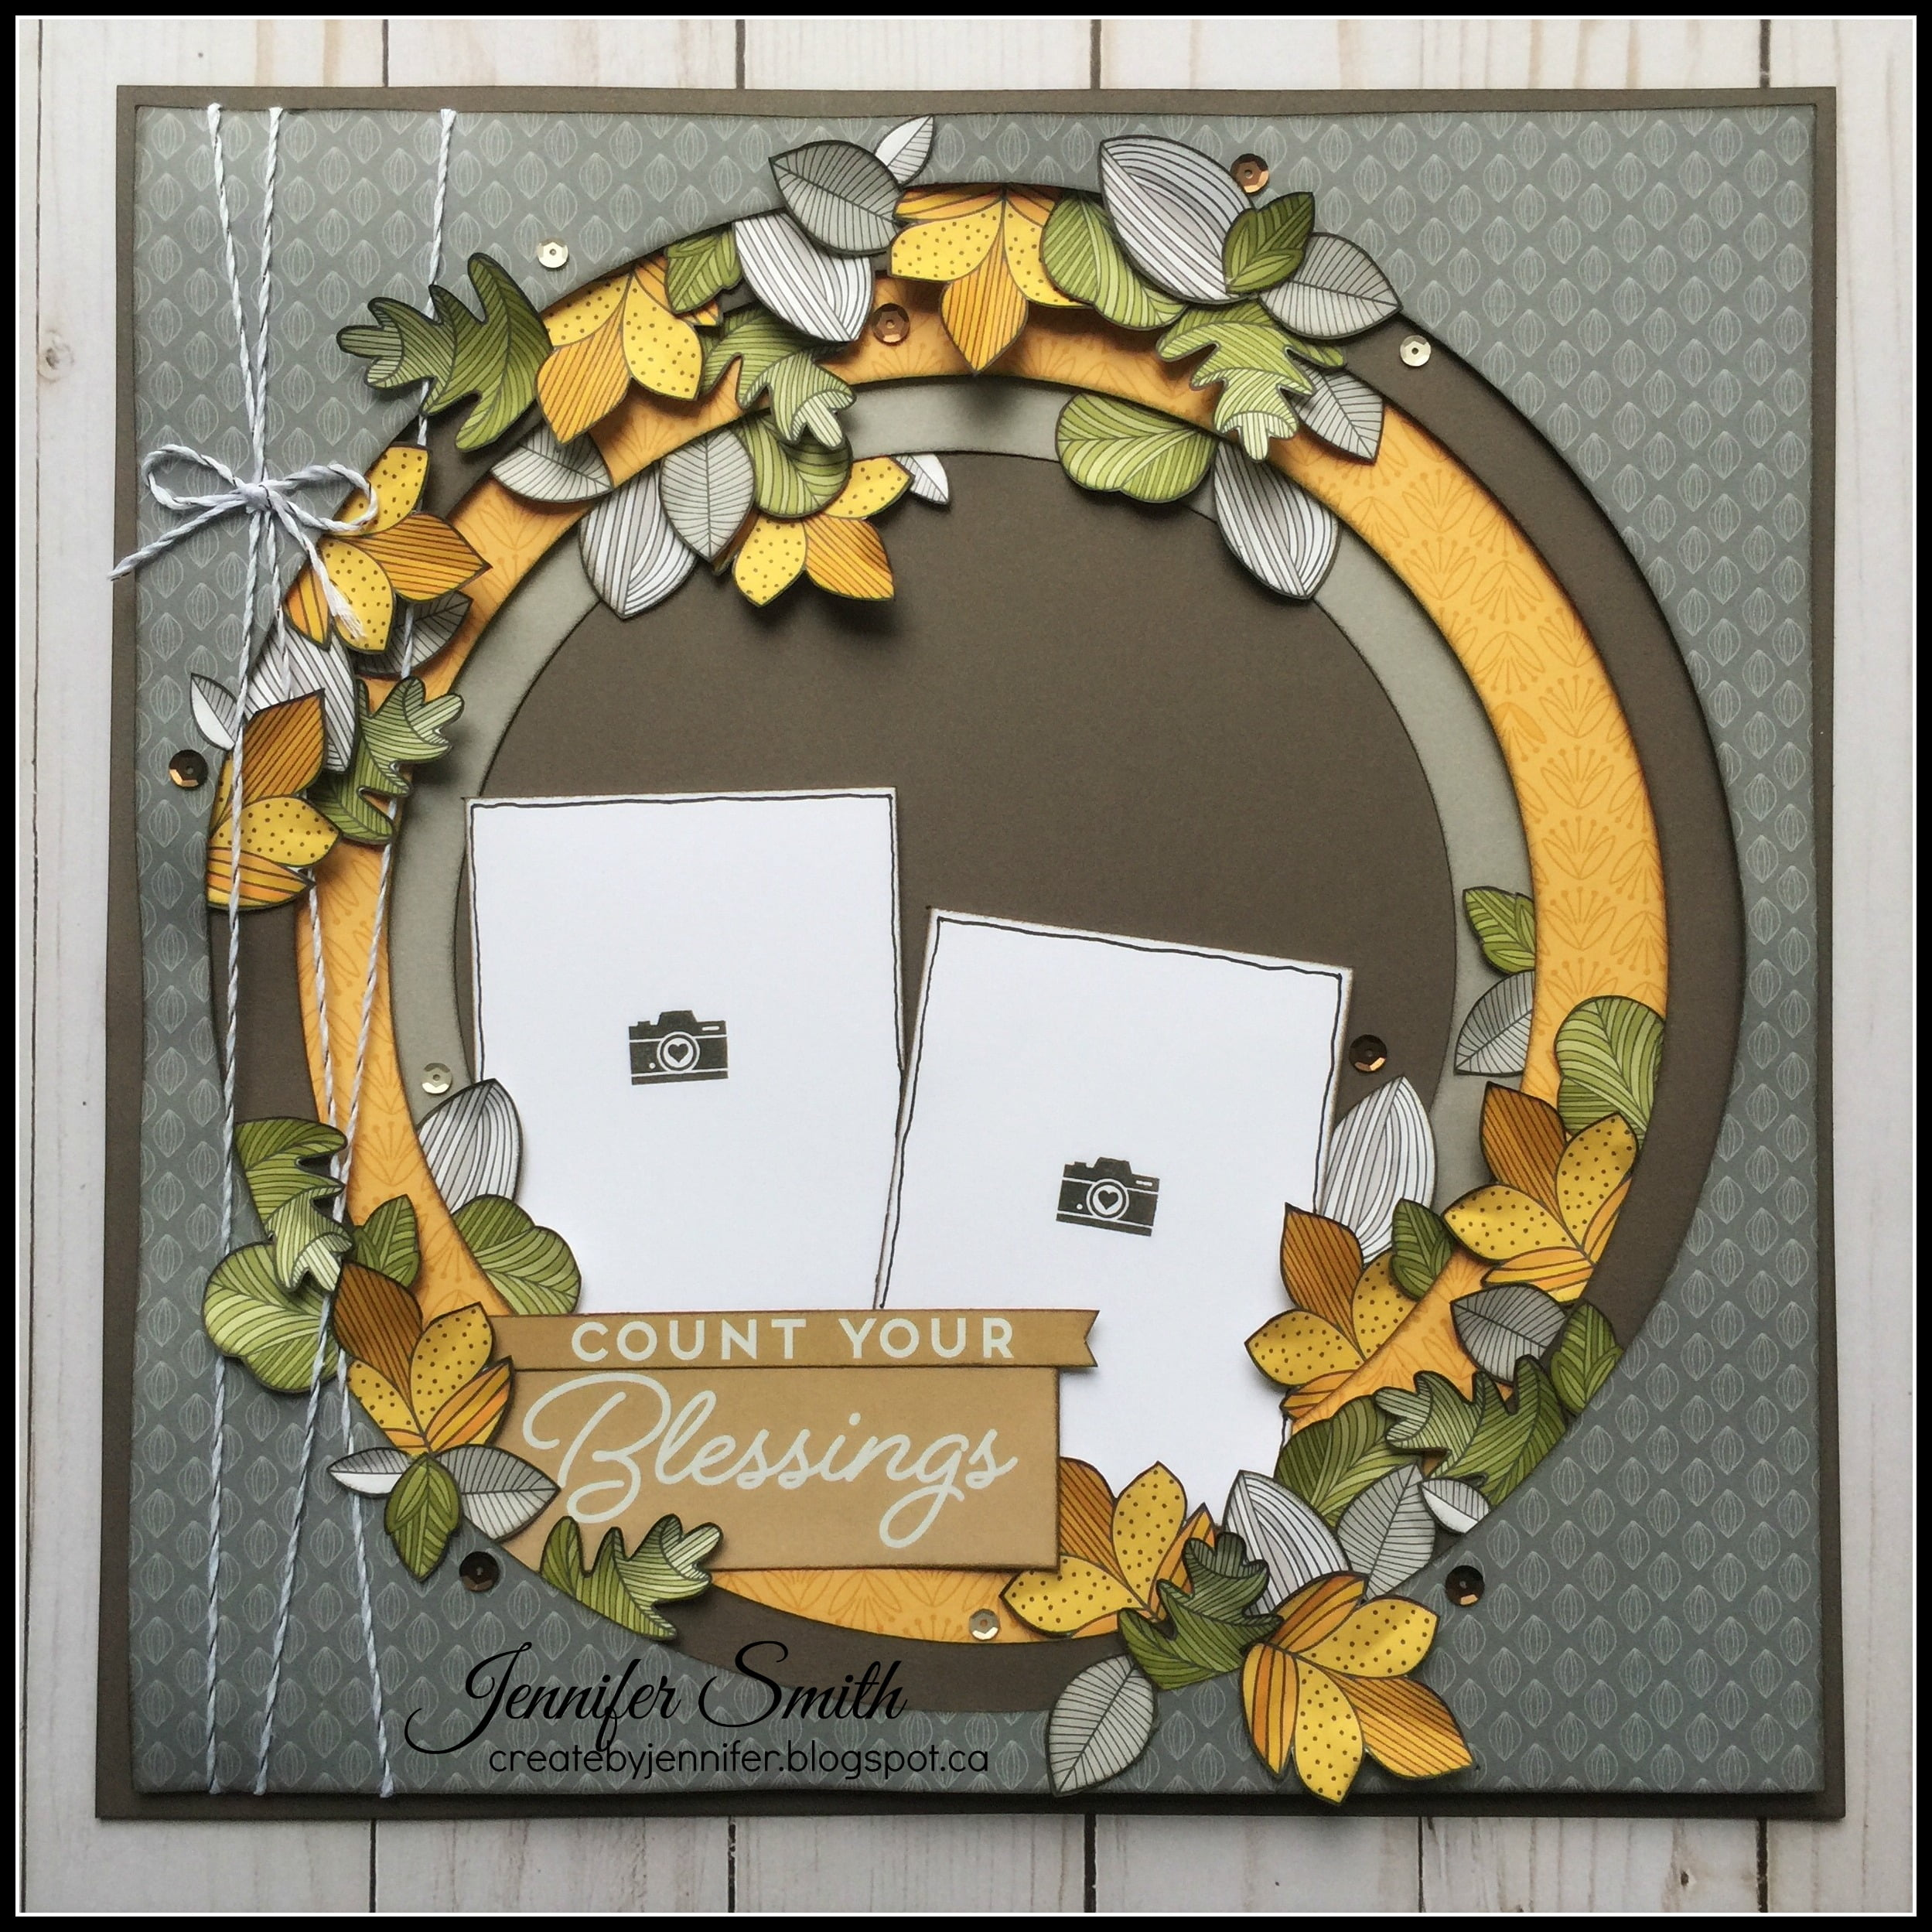 Count your blessings by Jennifer Smith for Scrapbook & Cards Today magazine